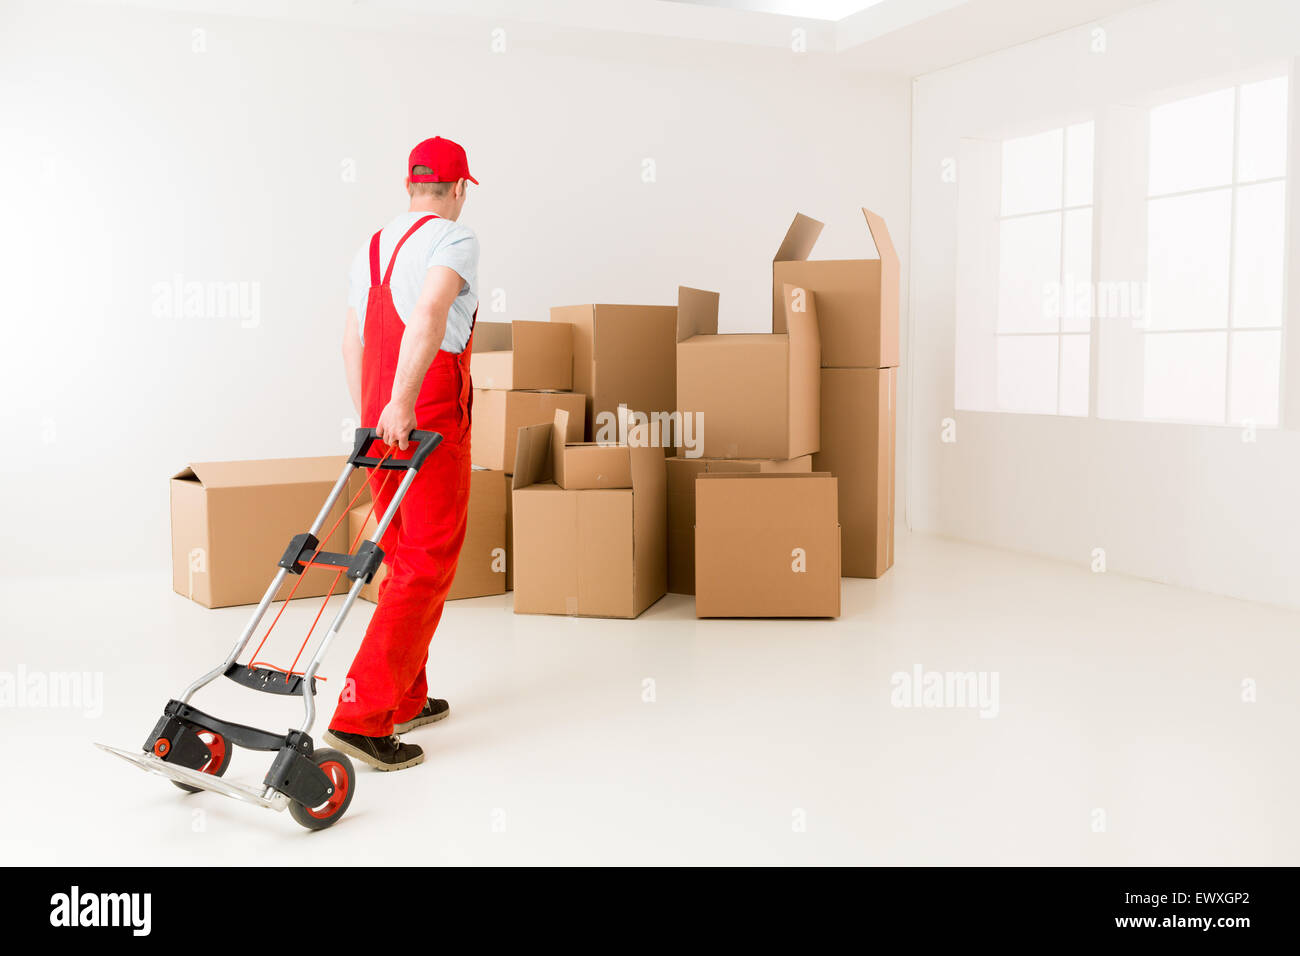 caucasian deliveryman in red uniform holding hand truck, getting ready to load cardboard boxes - Stock Image